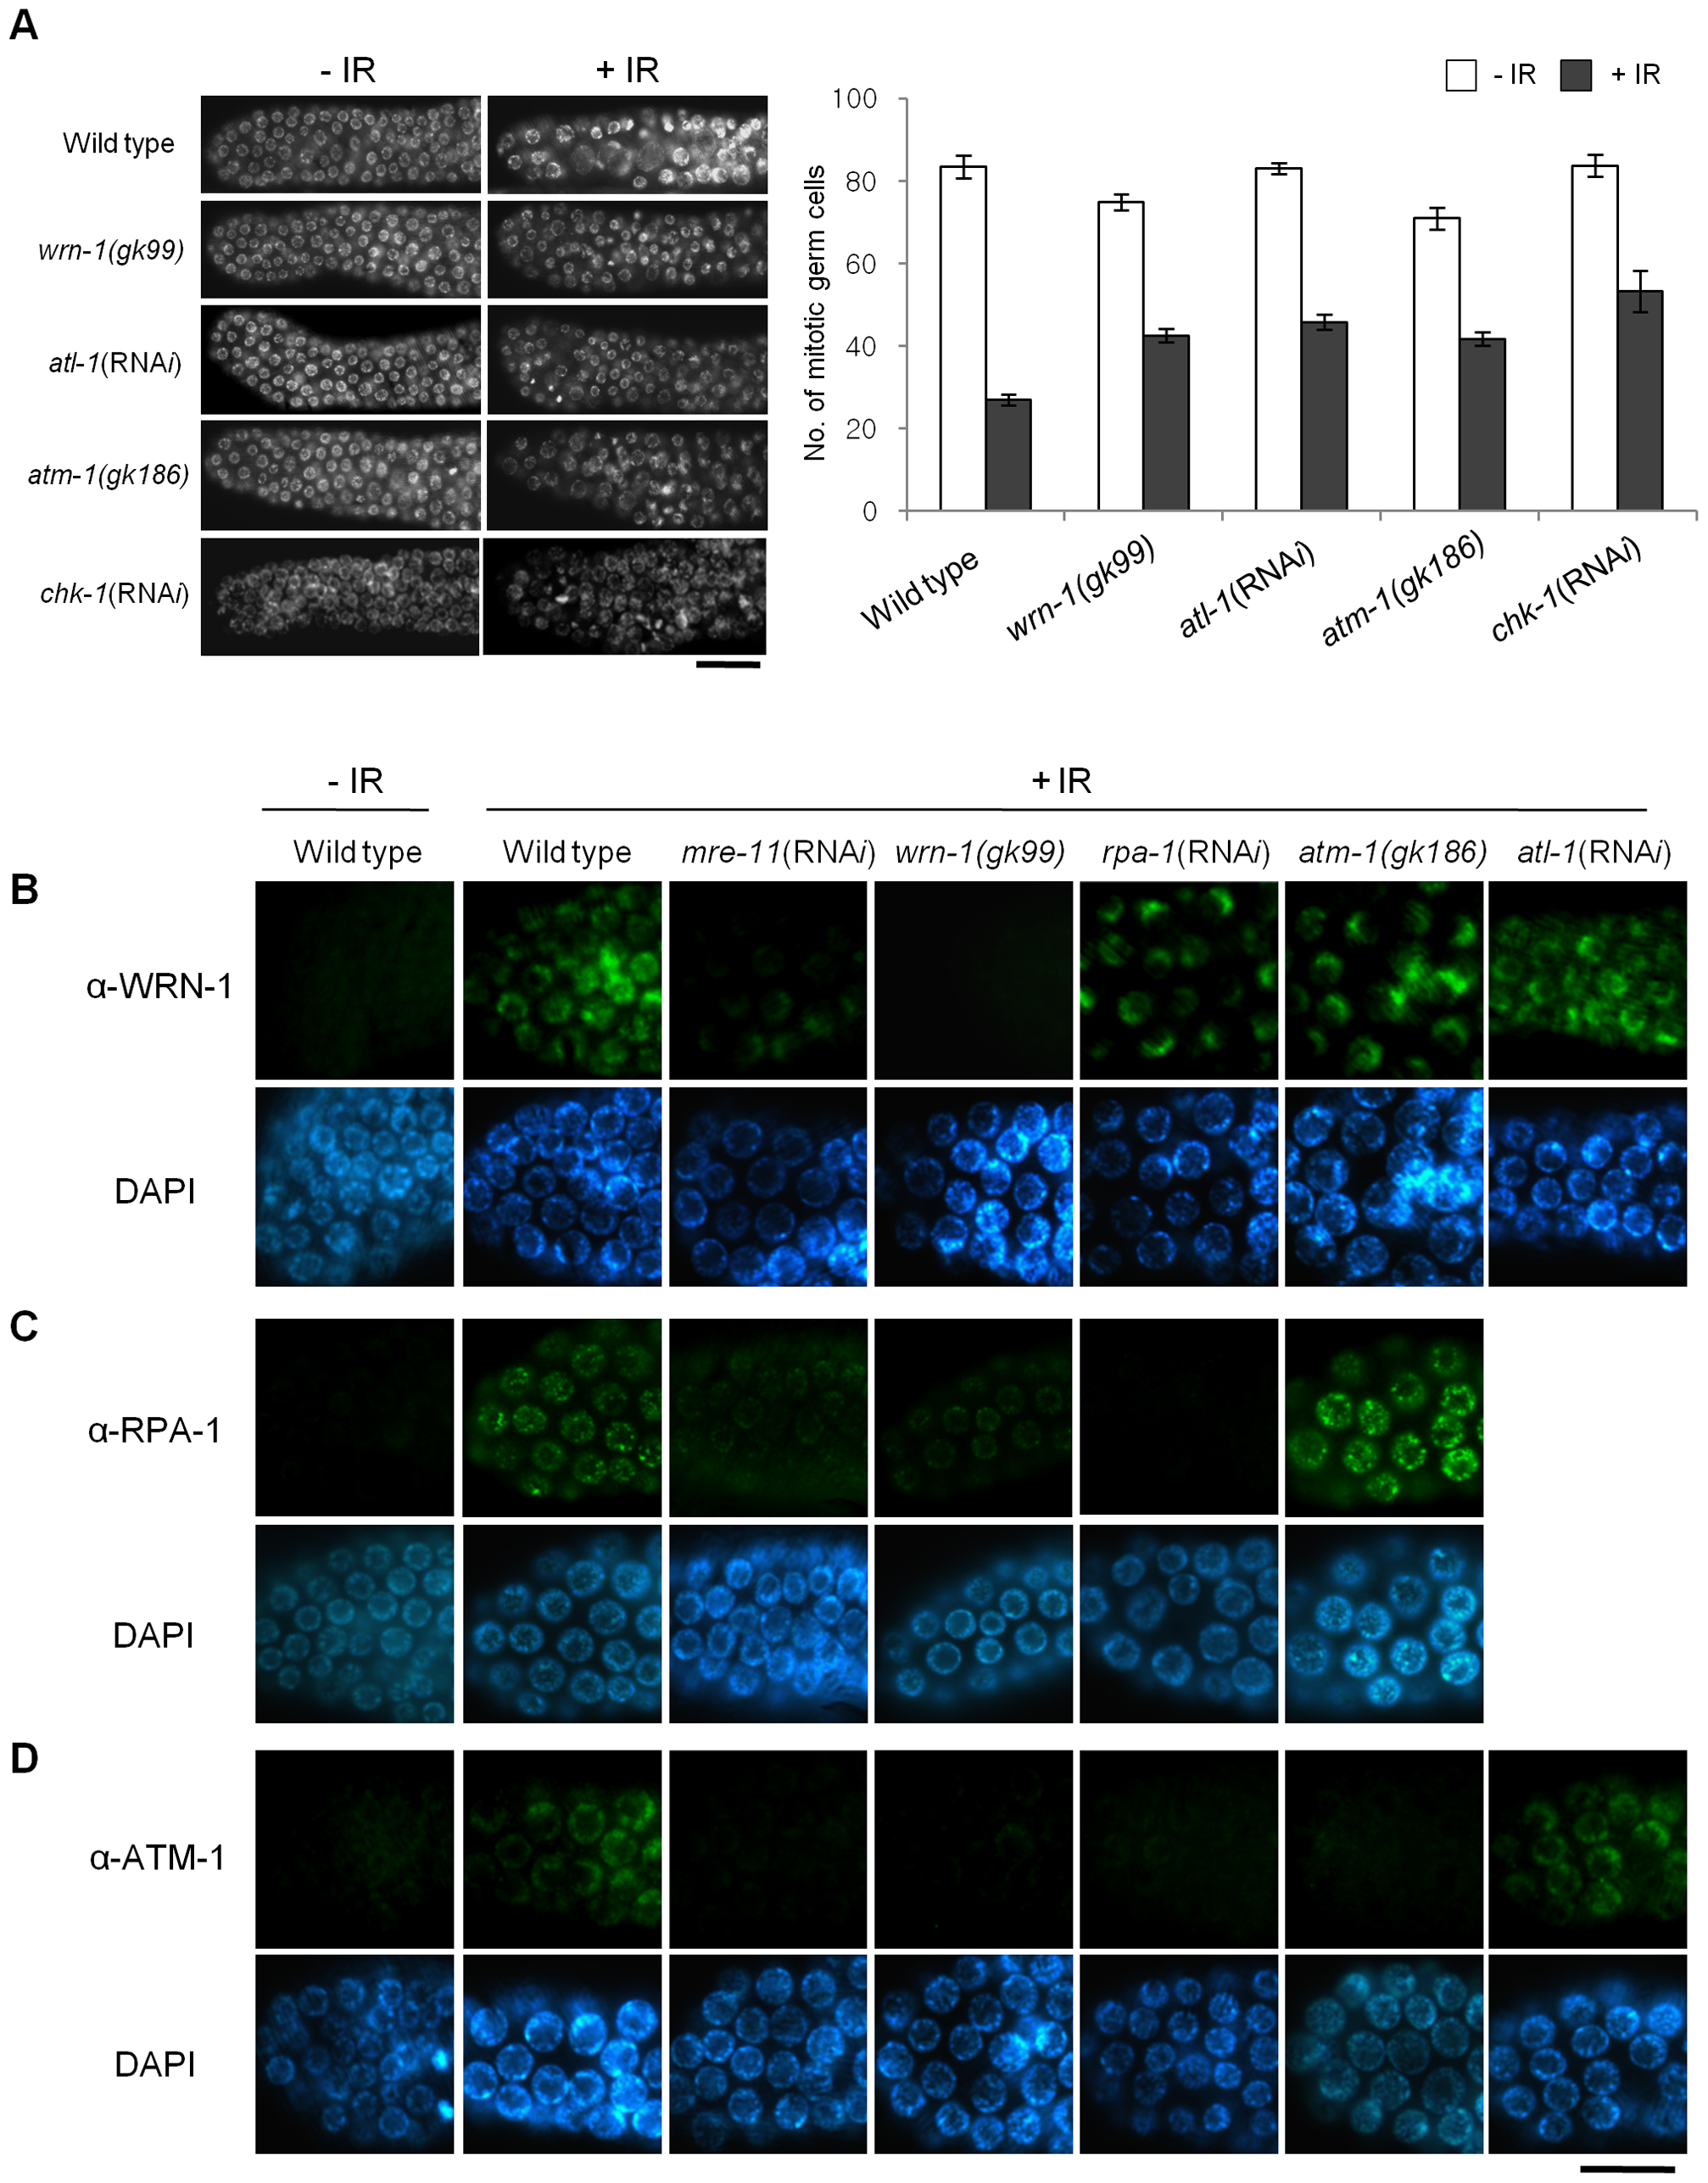 WRN-1 influences cell cycle arrest and the nuclear localization of ATM-1 and RPA-1 after γ-irradiation.